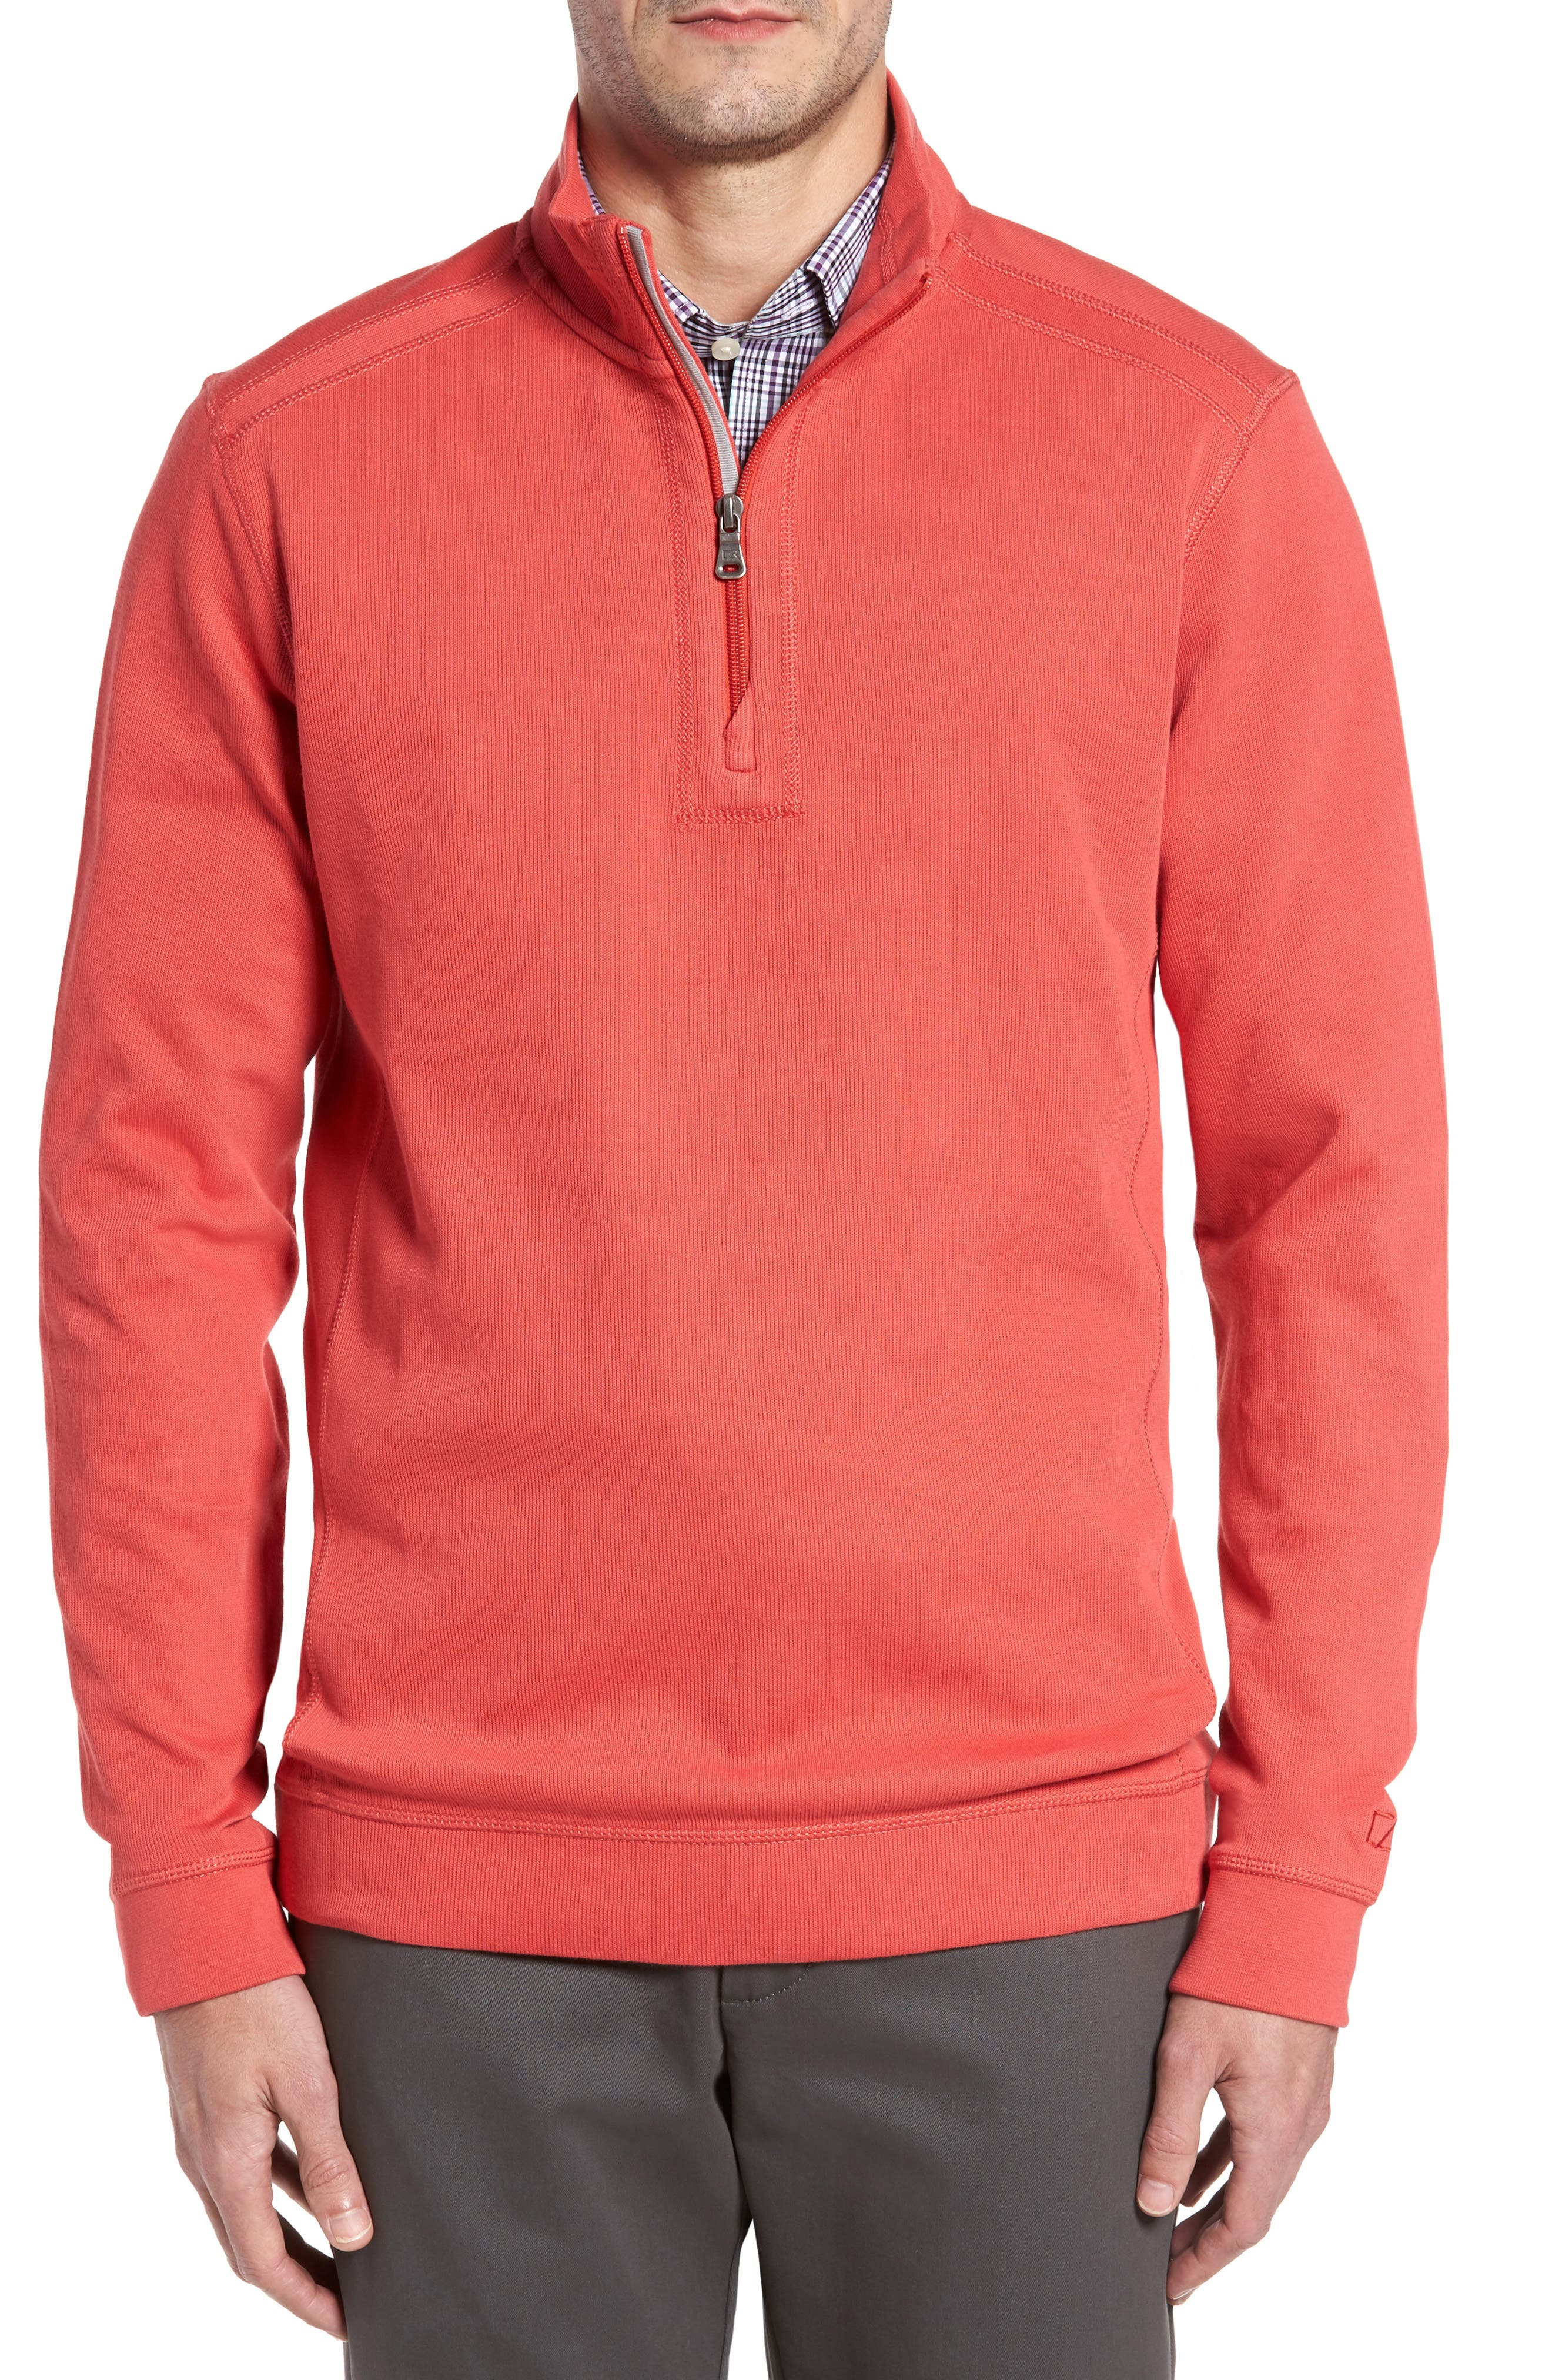 Alternate Image 1 Selected - Cutter & Buck Bayview Quarter Zip Pullover